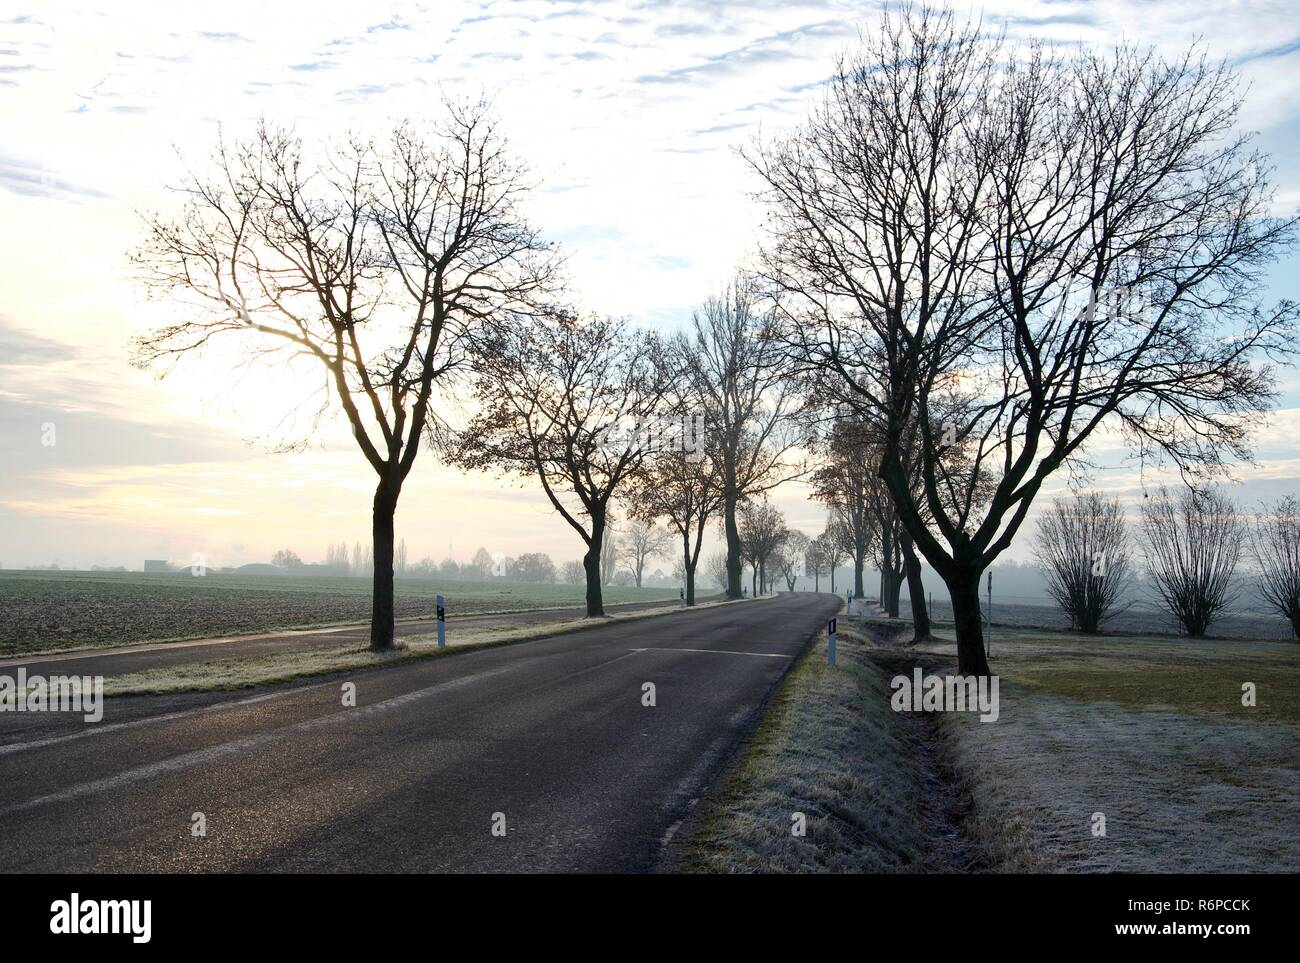 A frosty morning after sunrise in the countryside of Bavaria in Germany, slippery road, trees next to the street, winter - Stock Image